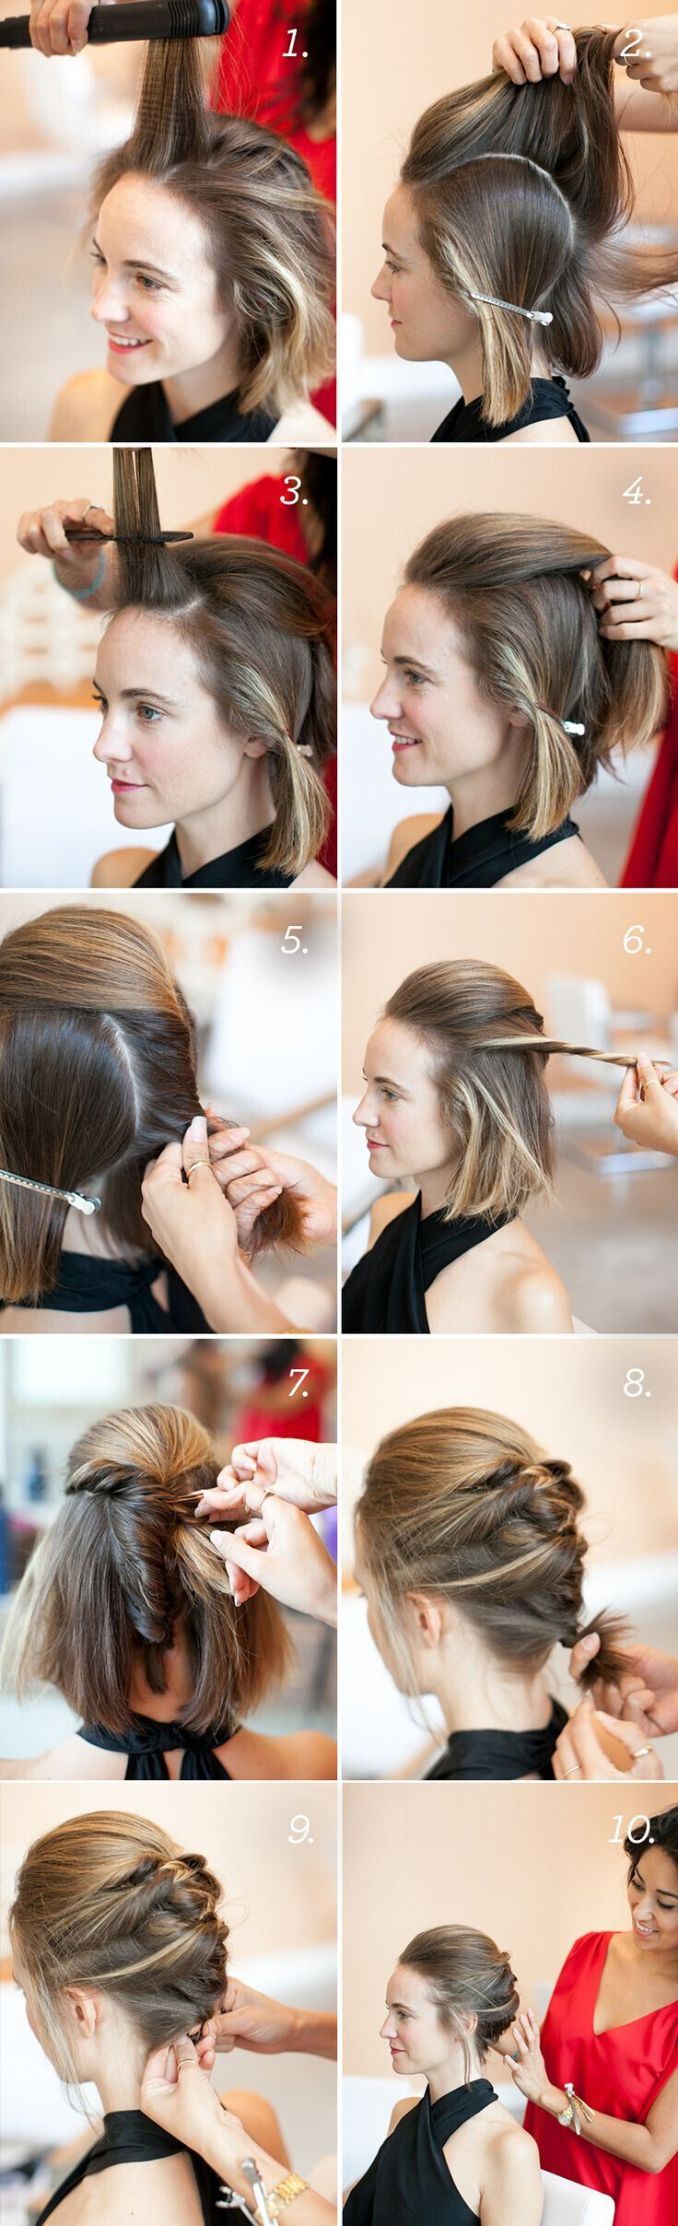 20 short hairstyles for girls: with or without curls! (1